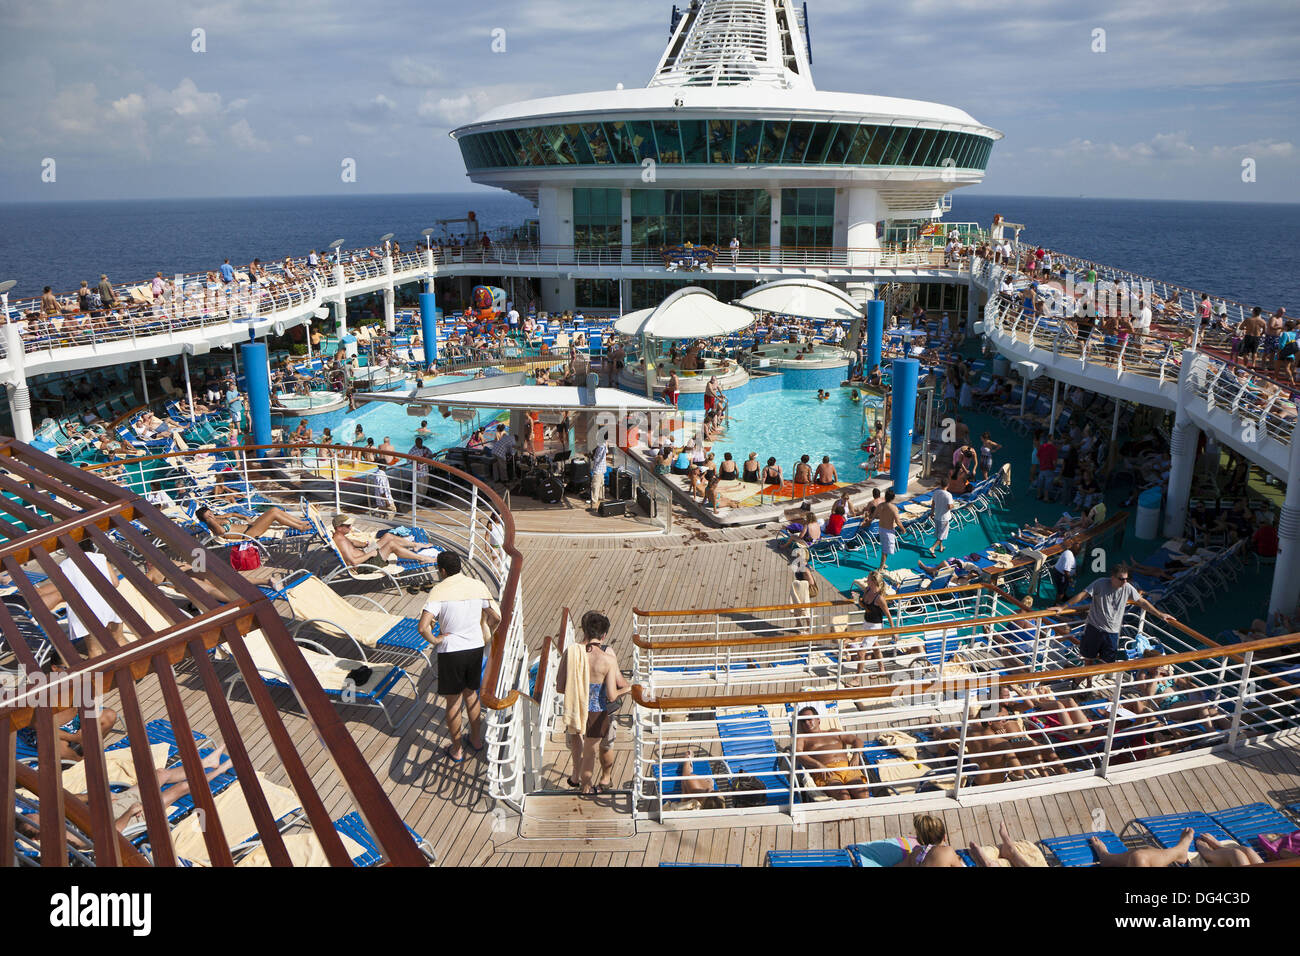 People on deck around swimming pool on Royal Caribbean Navigator of the Seas cruise ship - Stock Image